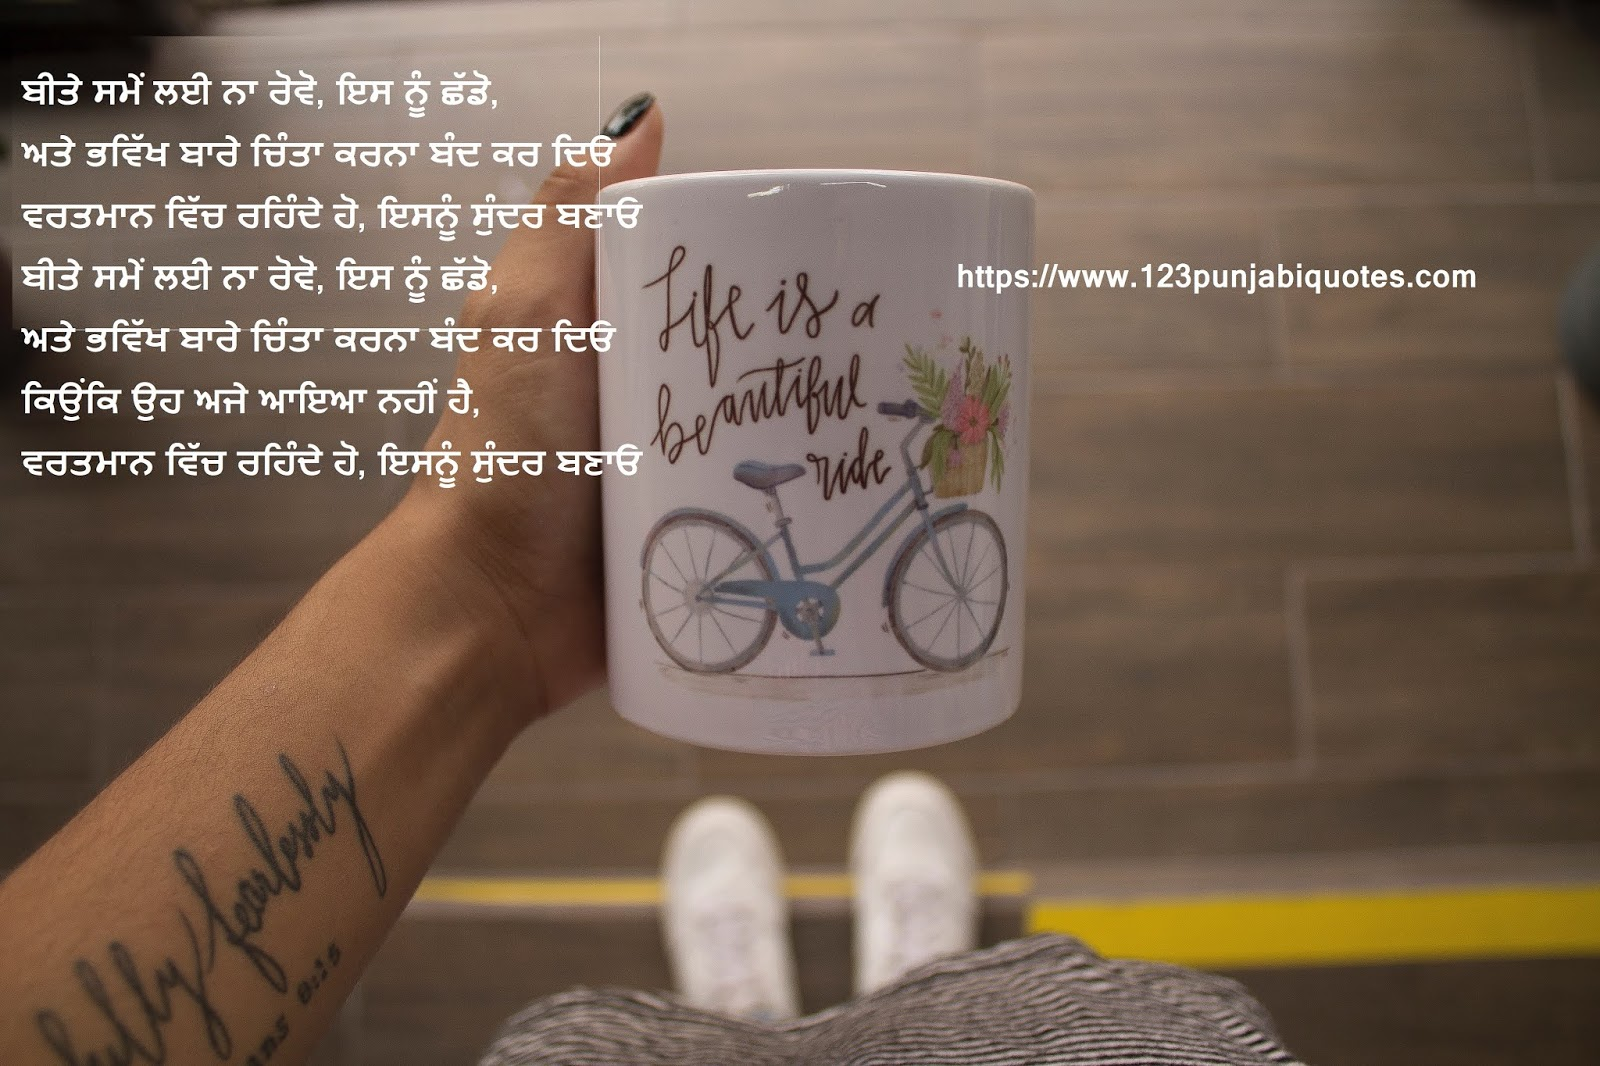 Best Punjabi Quotes On Life Famous Punjabi Quotes About Life